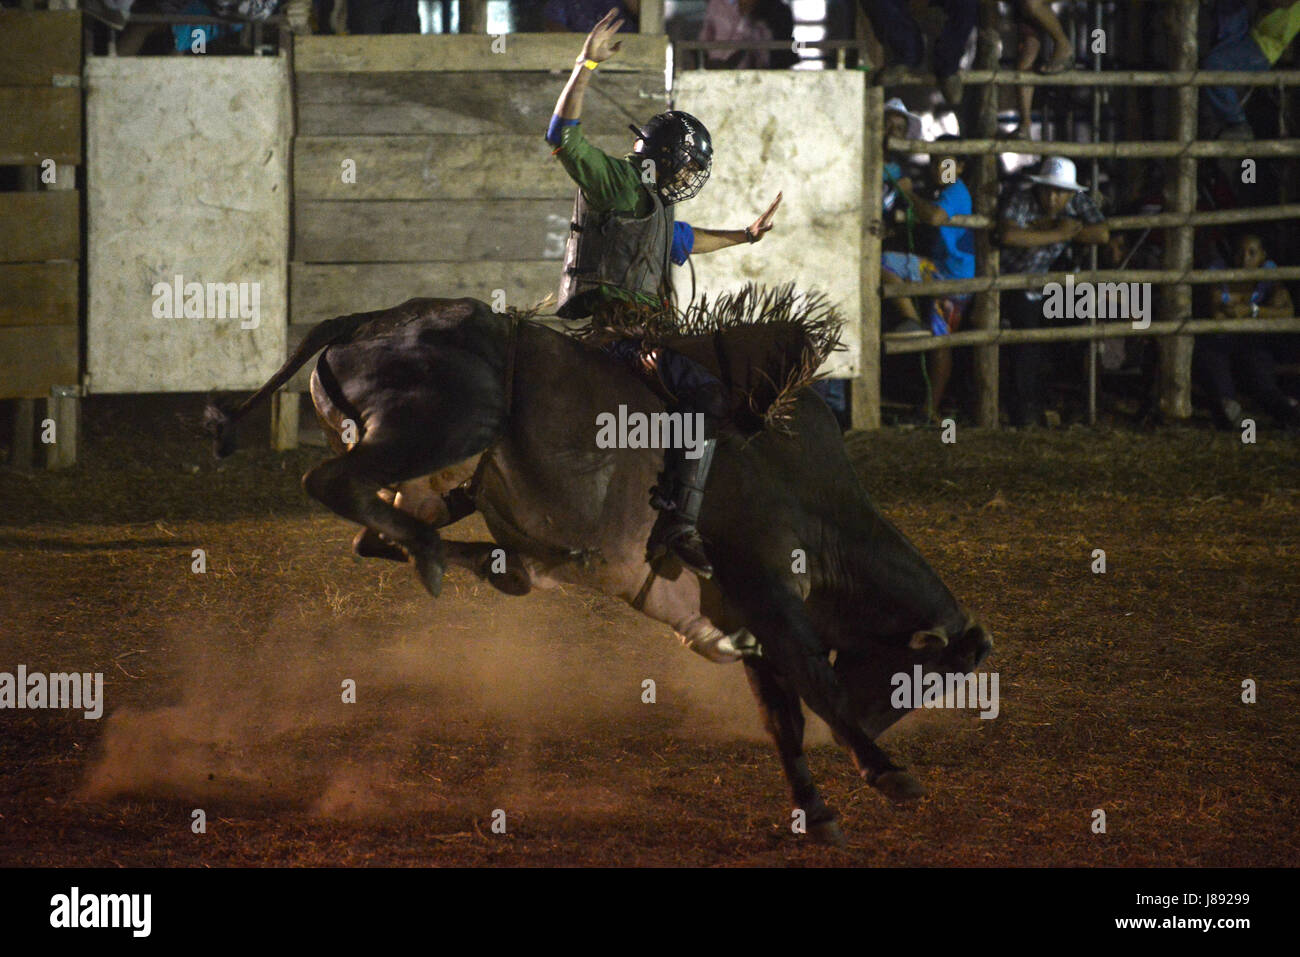 A bull rider balances himself on a bull during the bull festival in Nicoya, Costa Rica. - Stock Image